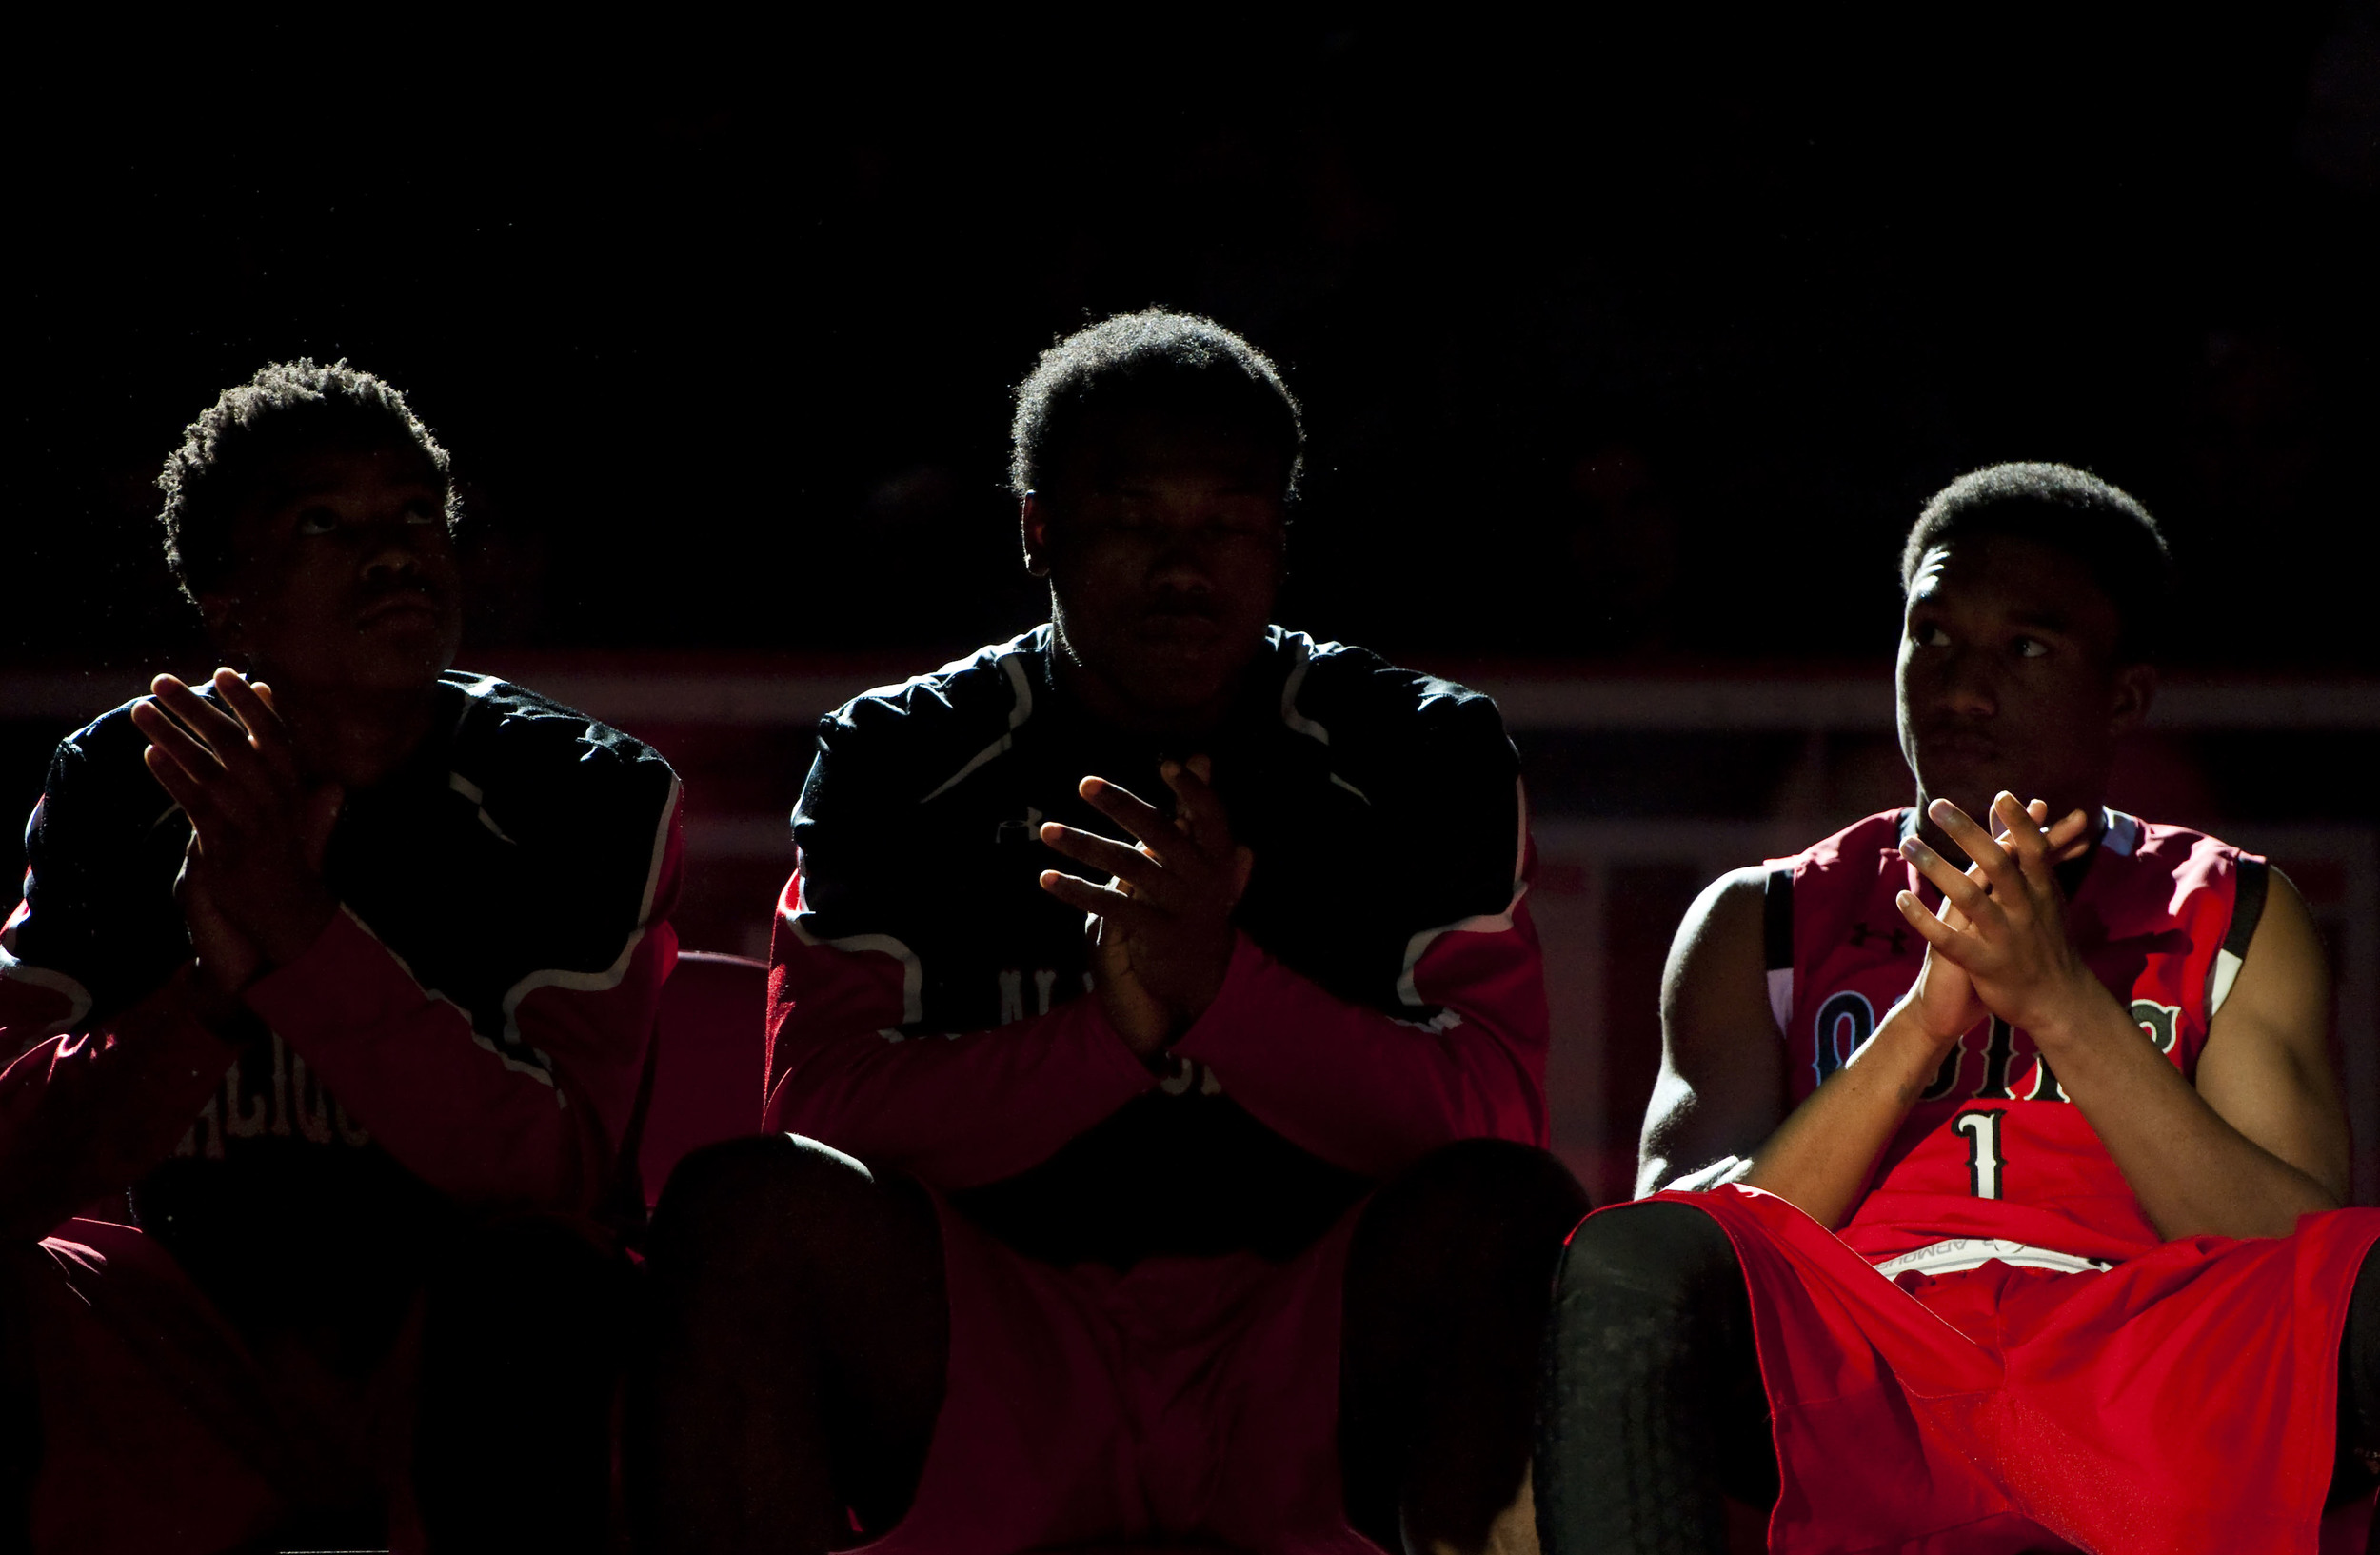 Aliquippa's Jassir Jordan (1) is lit before announcements of teams during the PIAA Class AA boys basketball championship on Saturday, March 19, 2016 at the Giant Center in Hershey, Pa. Aliquippa won 68-49.